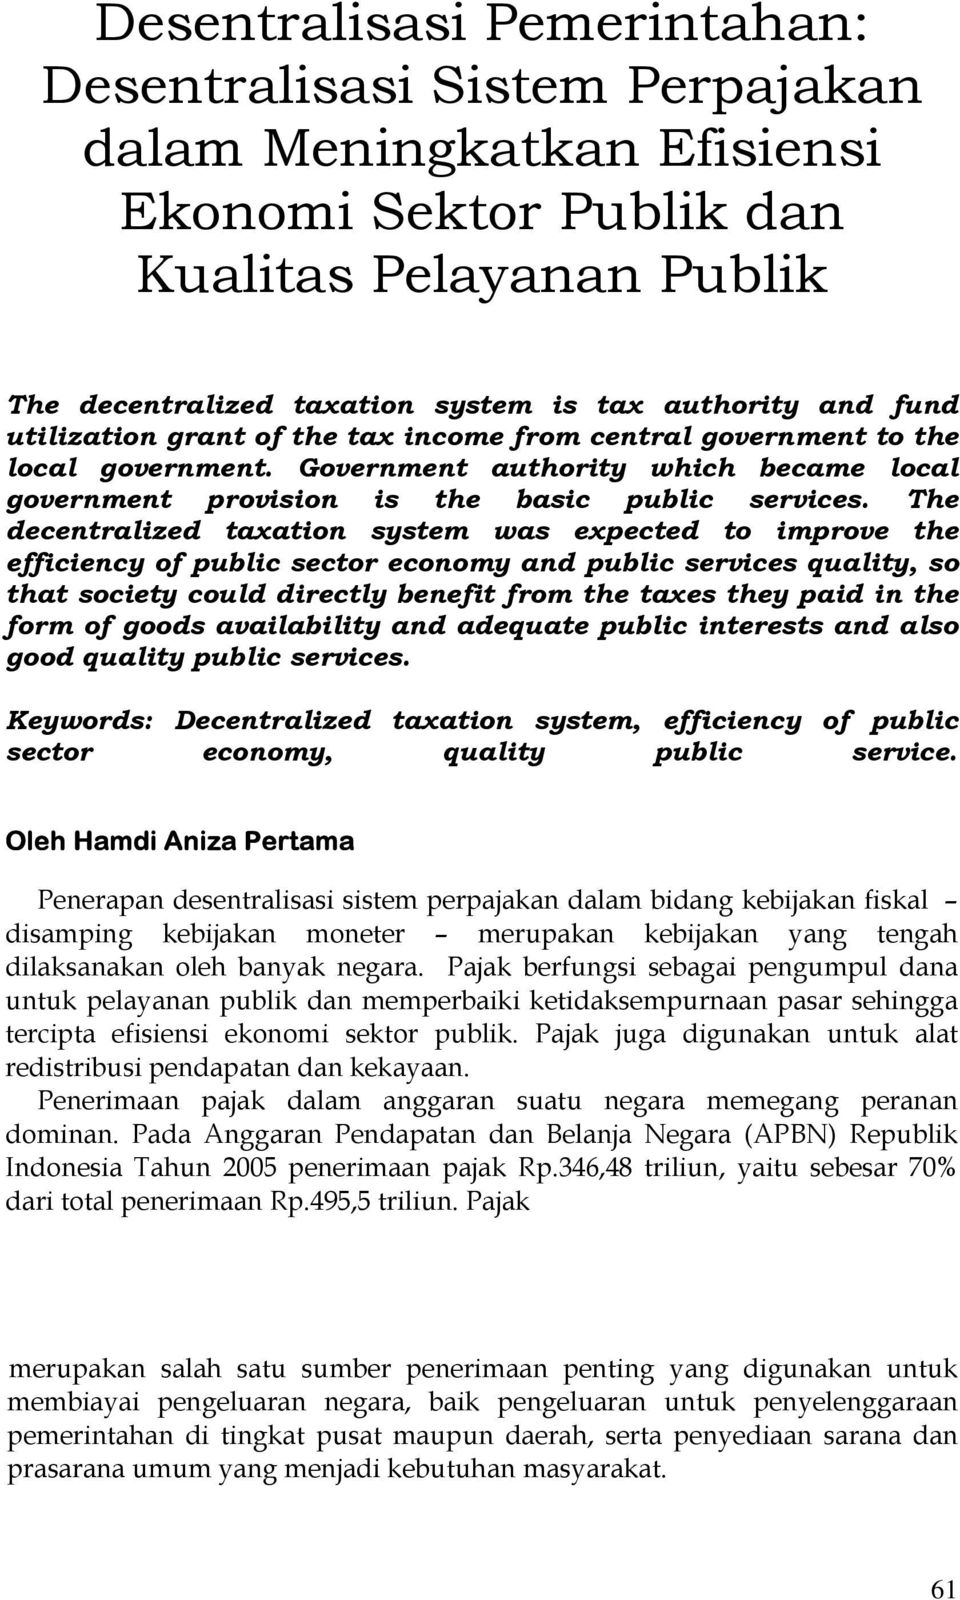 The decentralized taxation system was expected to improve the efficiency of public sector economy and public services quality, so that society could directly benefit from the taxes they paid in the